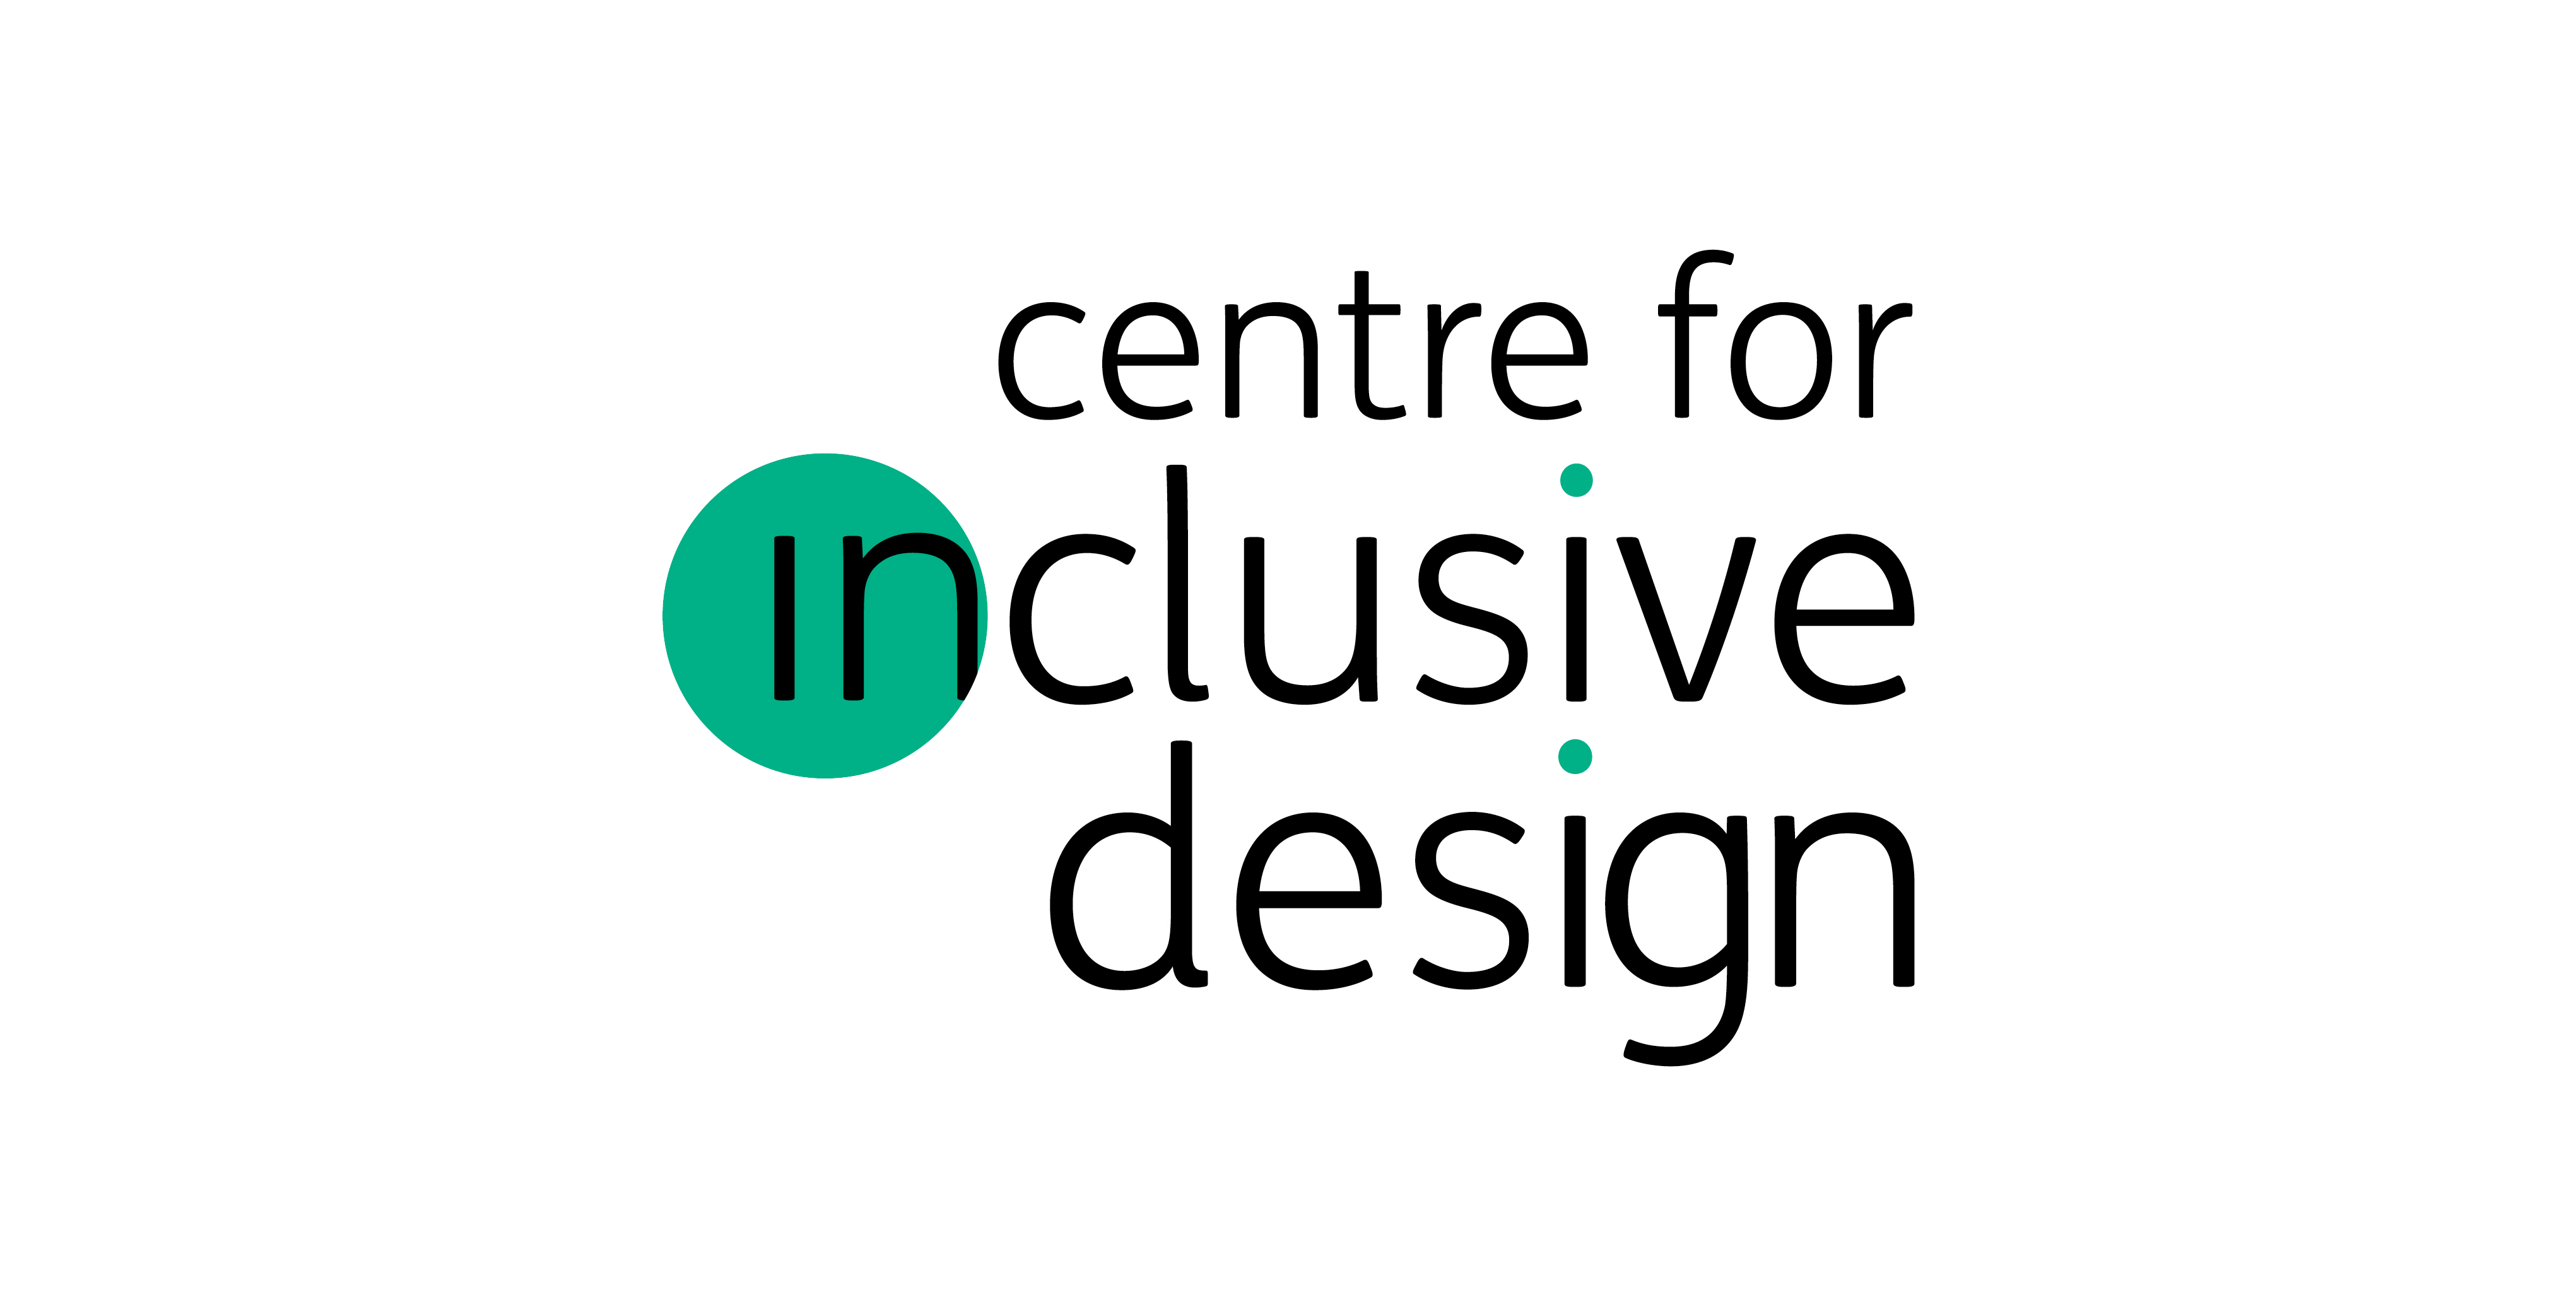 Centre for Inclusive Design